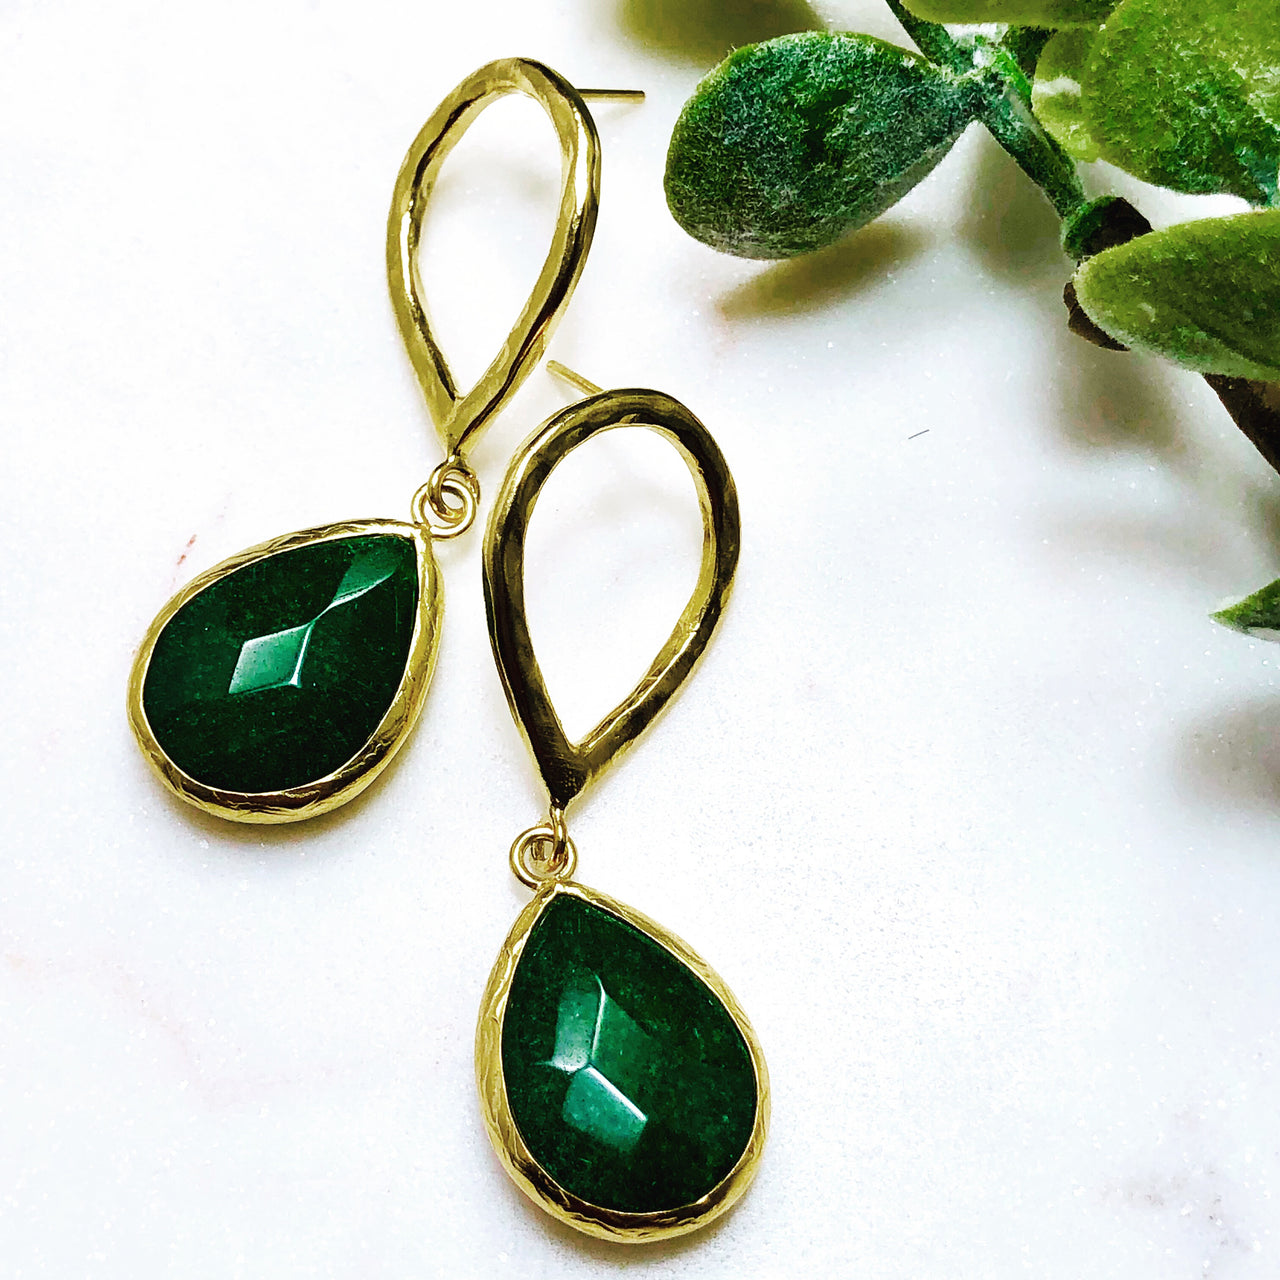 Sterling Silver/ Yellow Gold Plate Green Quartz Earrings.